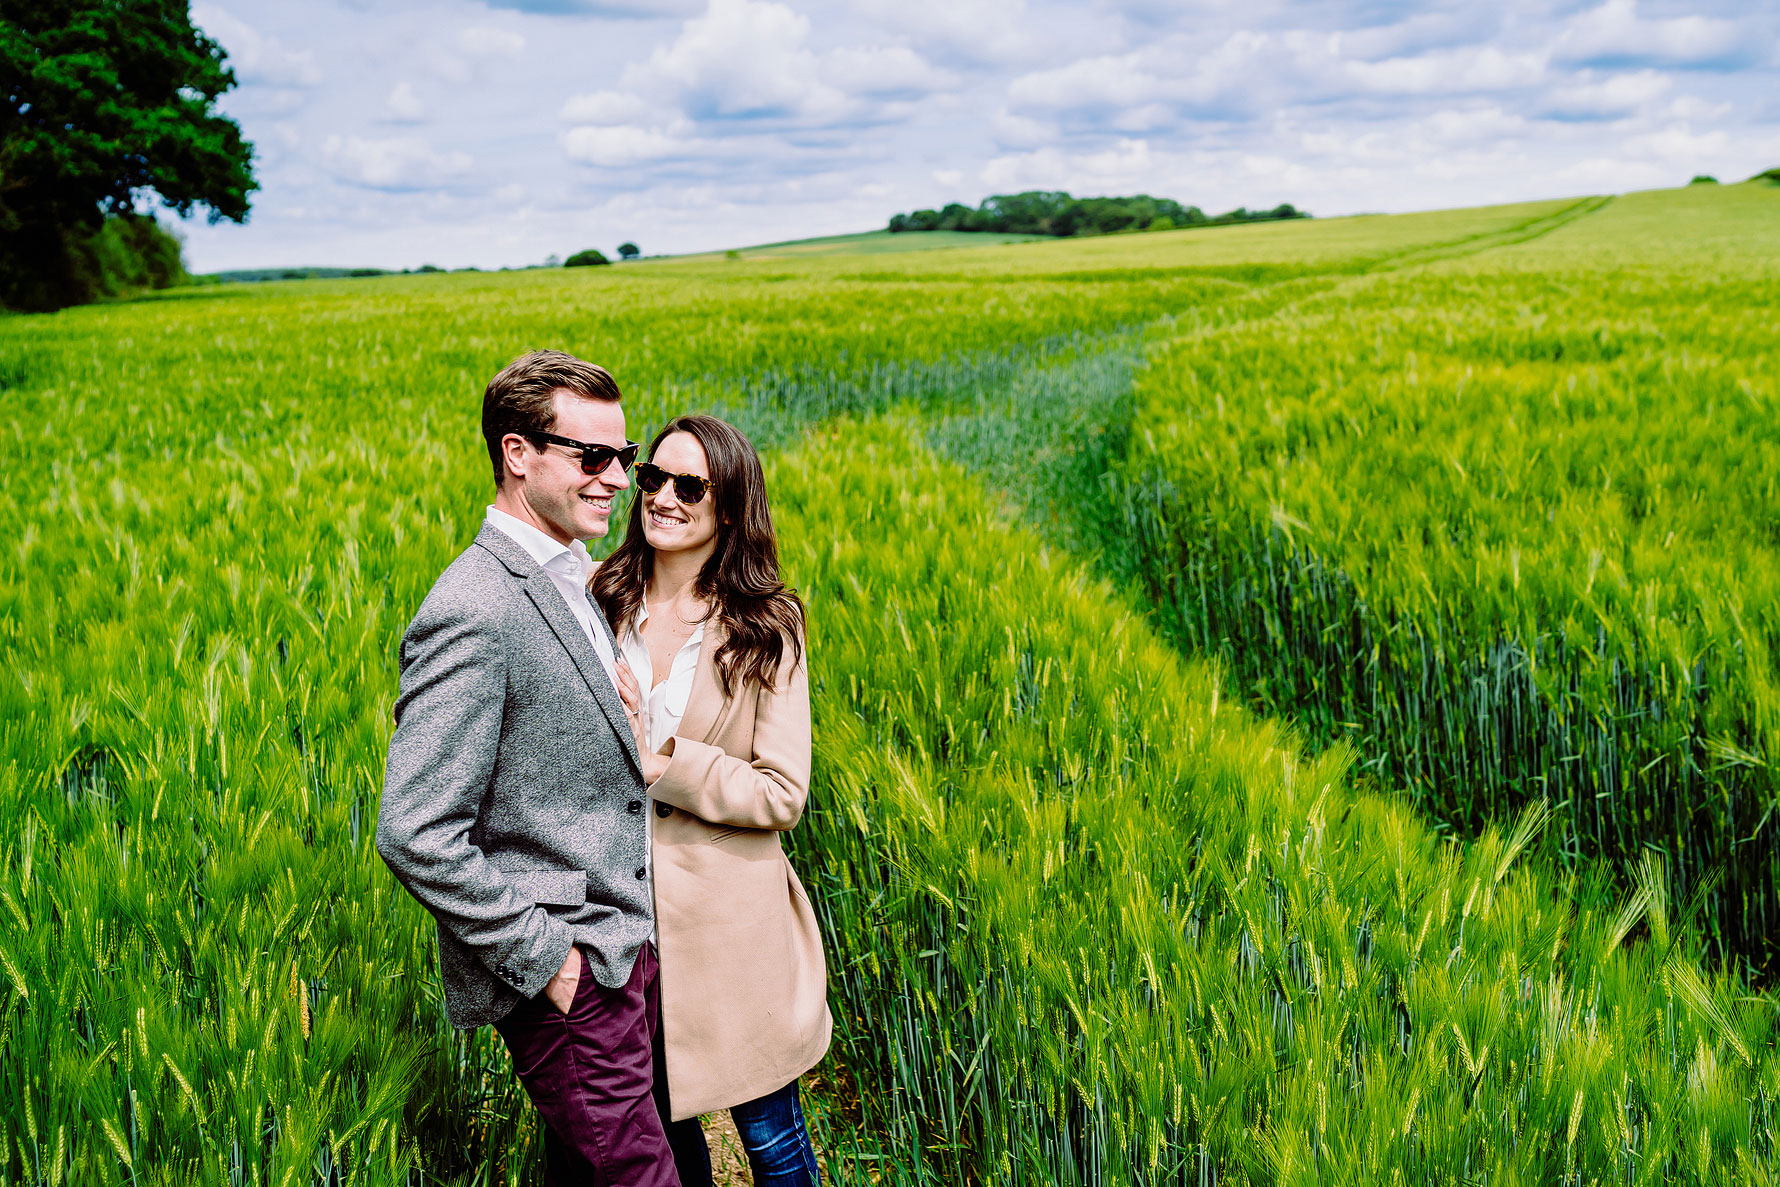 engagement shoot photography in Brampton by Elliot w patching photography